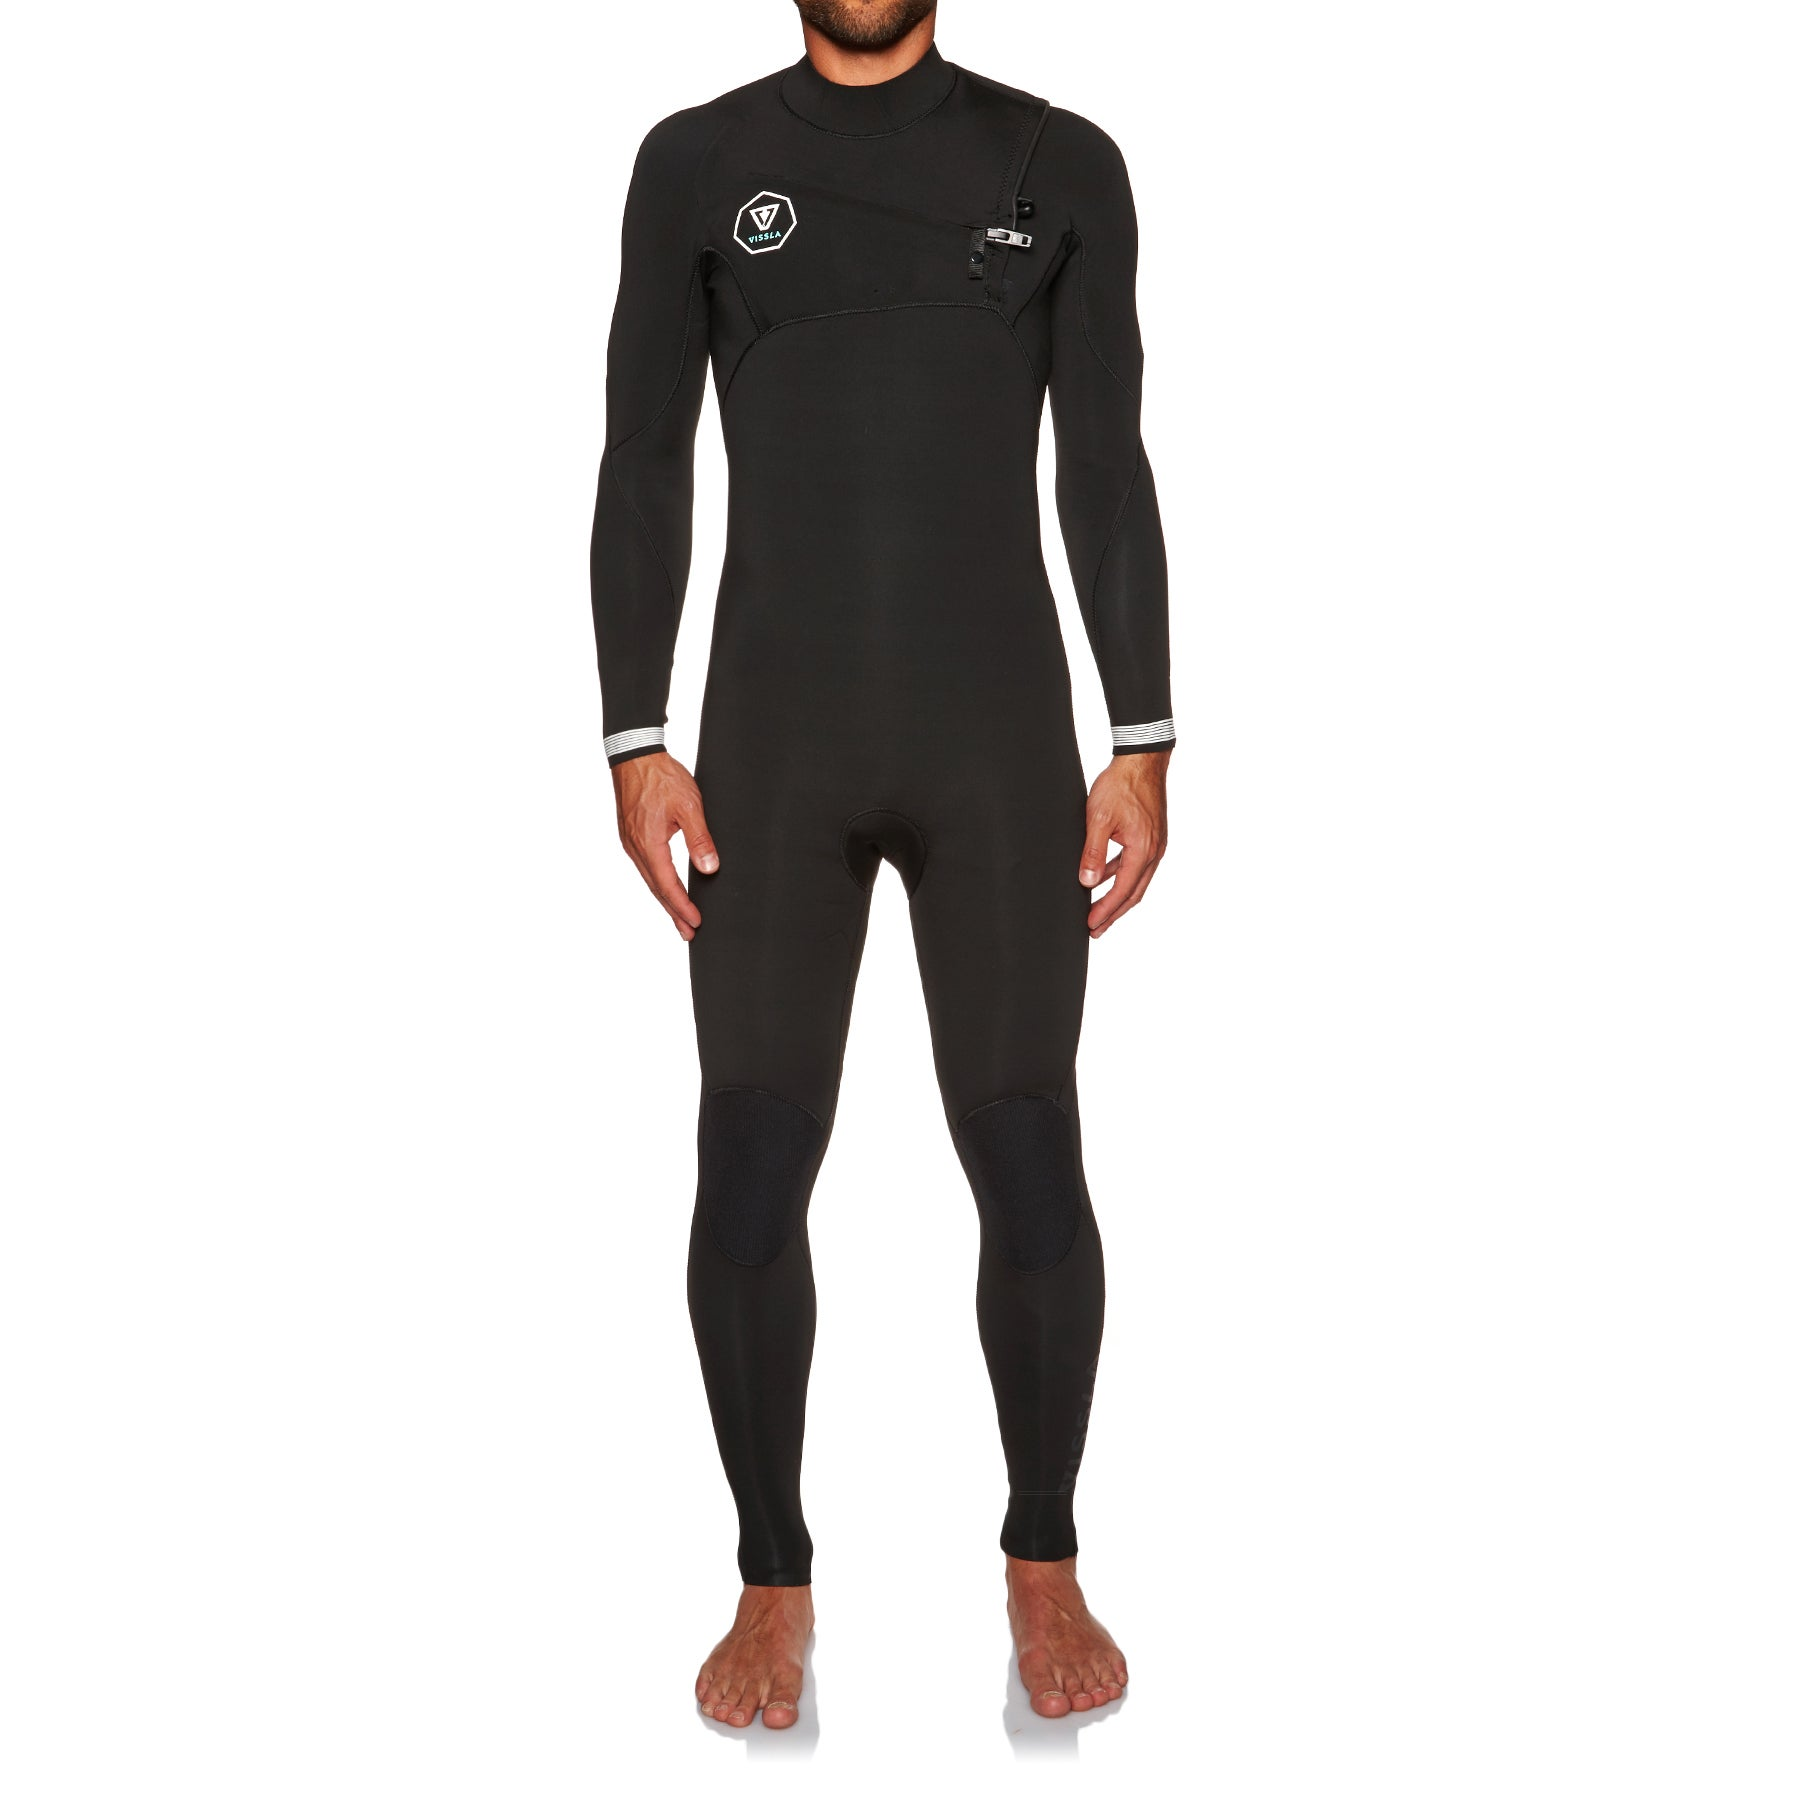 Combinaison de Plongée Vissla 7 Seas 2mm Chest Zip - Black With White